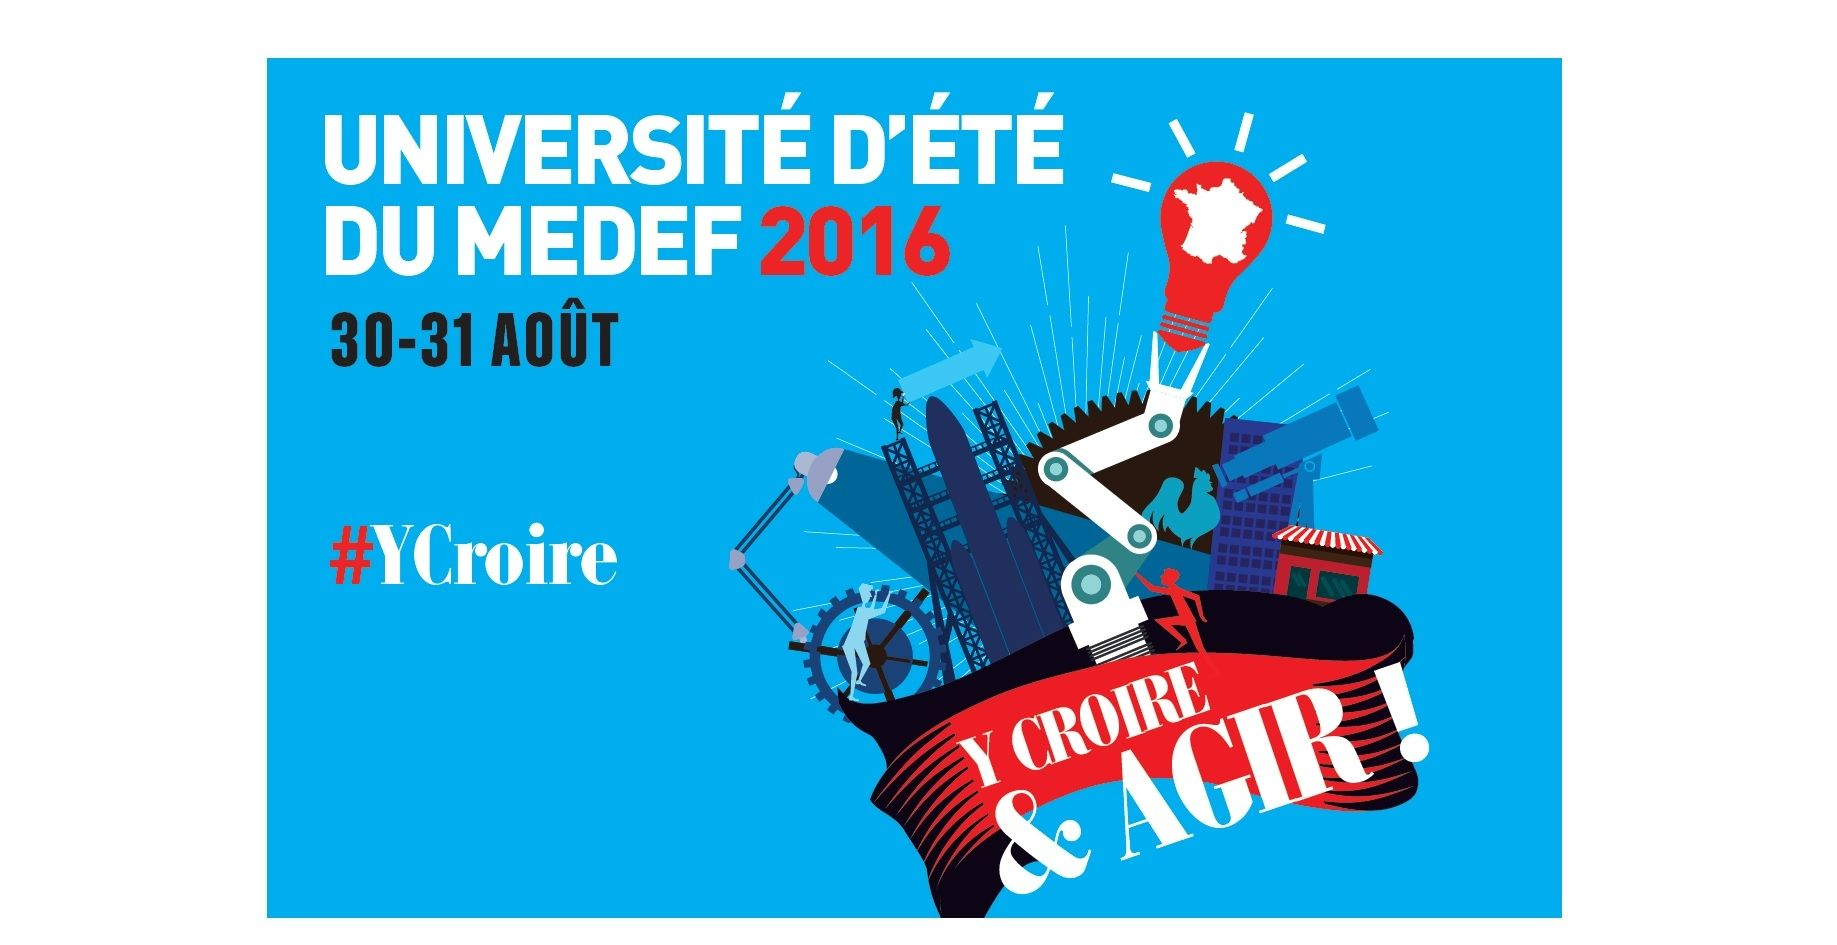 Thematique profession  Breves Medef tiendra son Universite ete aout